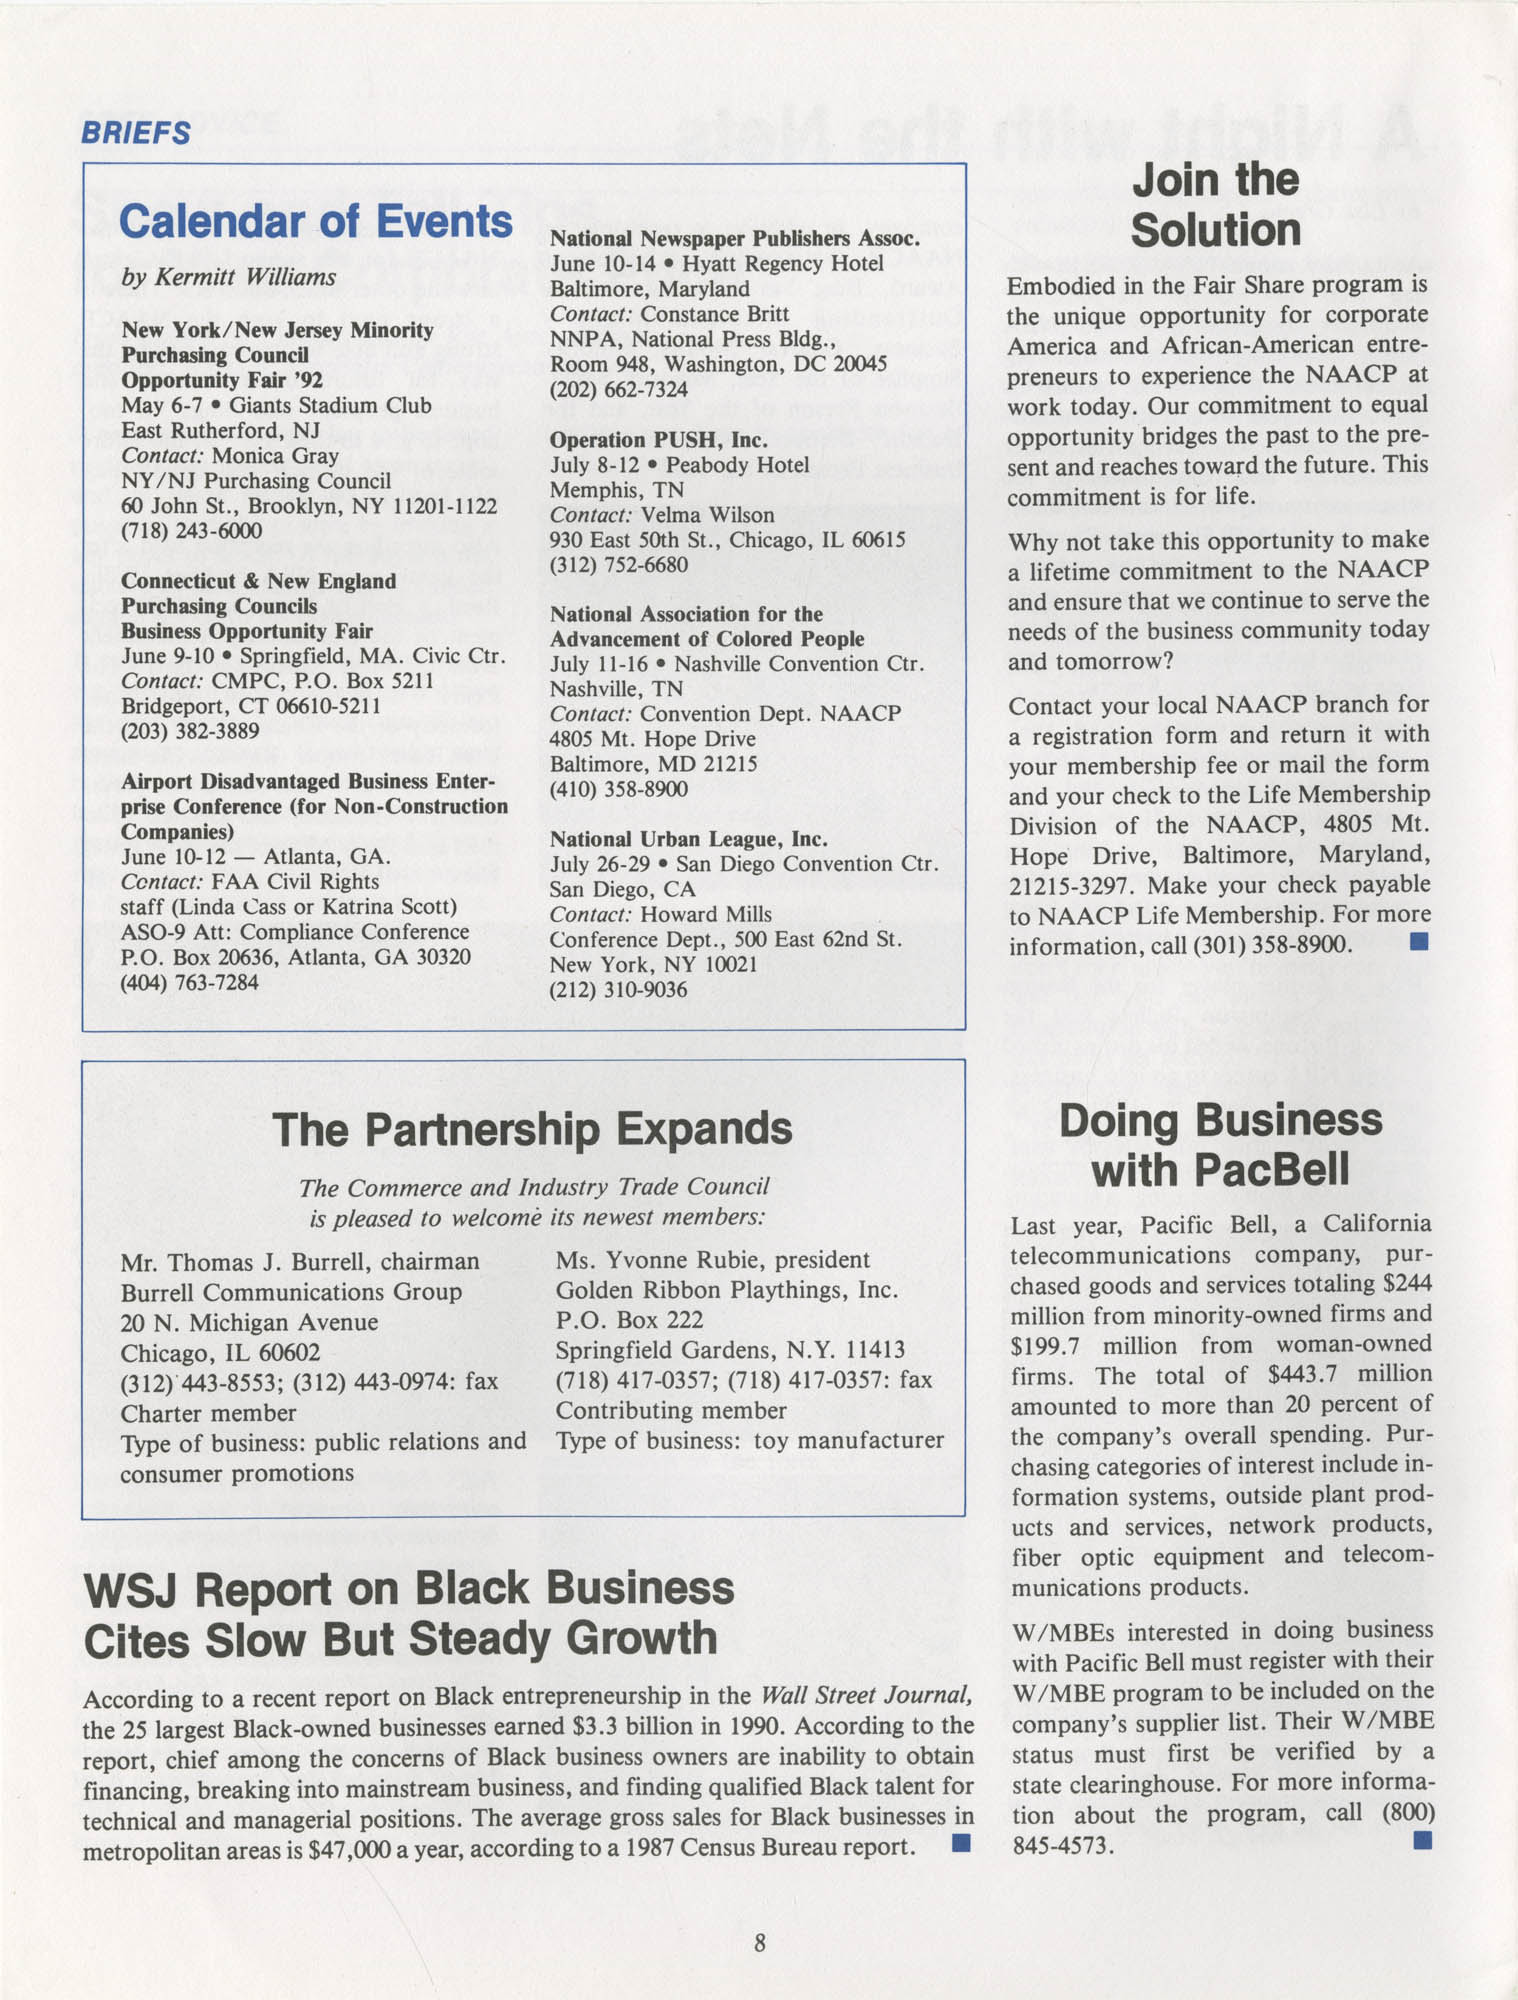 NAACP Commerce and Trade Council Economic Report, Vol. 1, No. 2, Spring 1992, Page 8